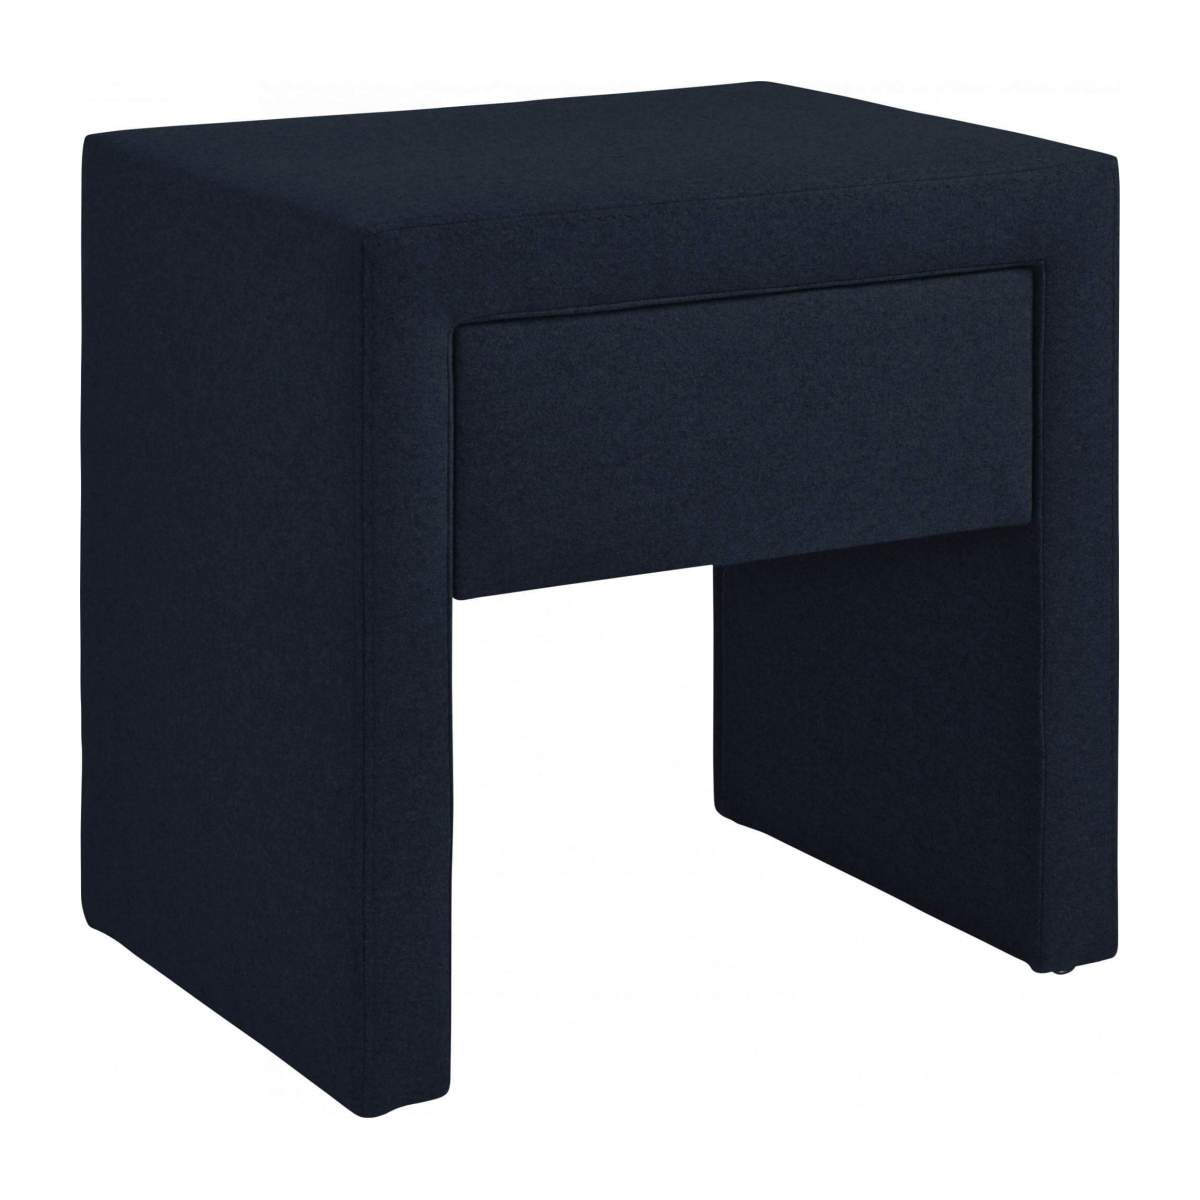 Fabric bedside table n°1